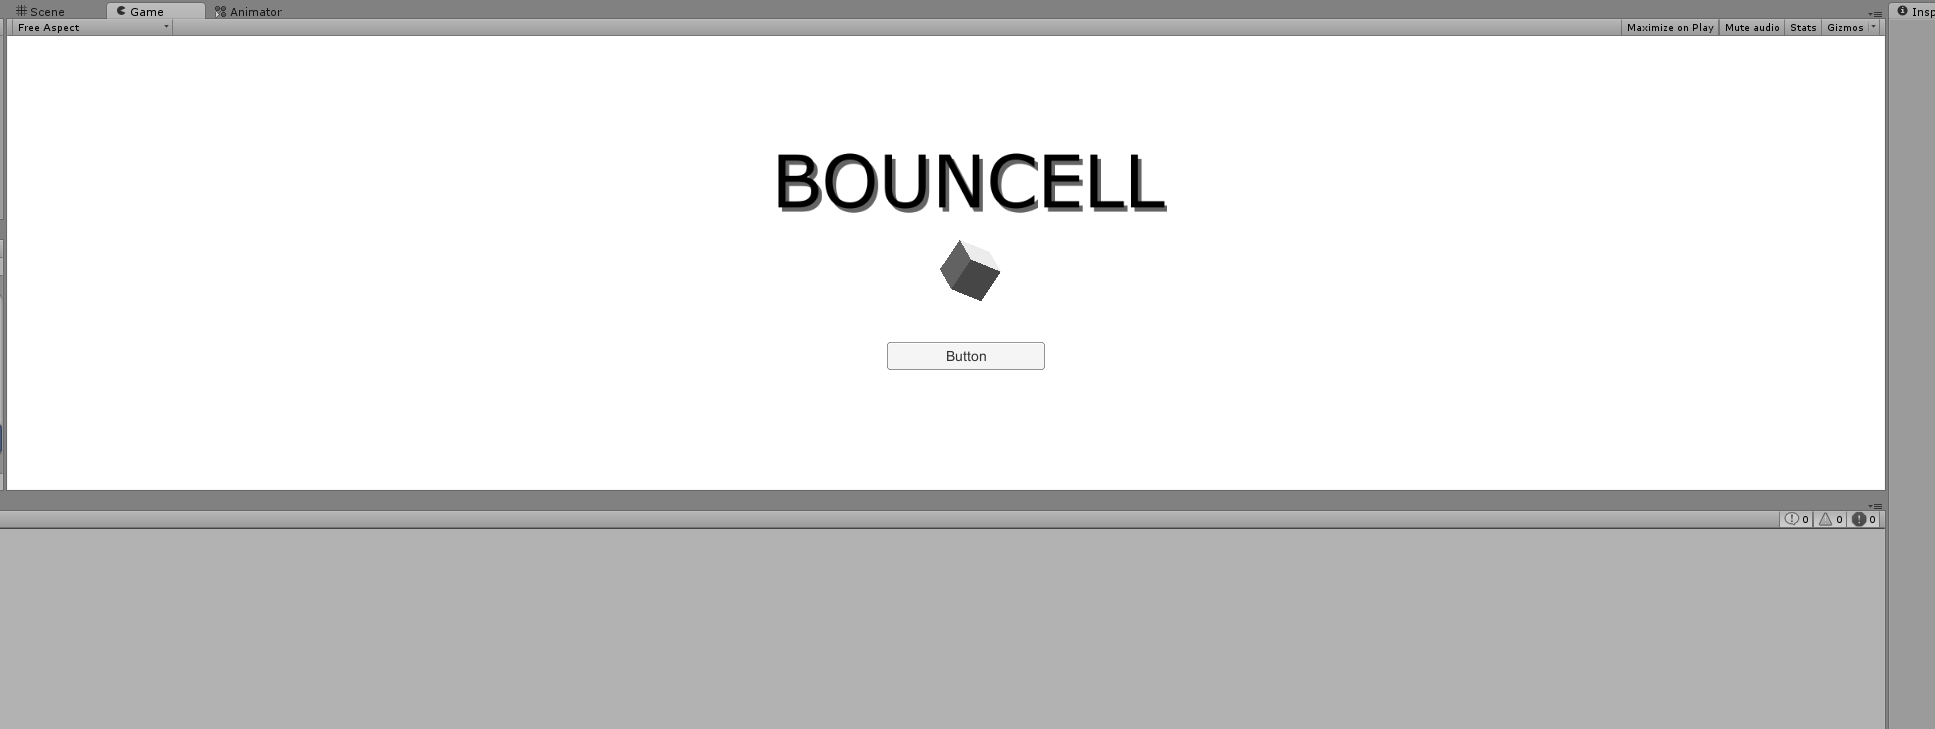 2568953_146368471133_bouncelll.png